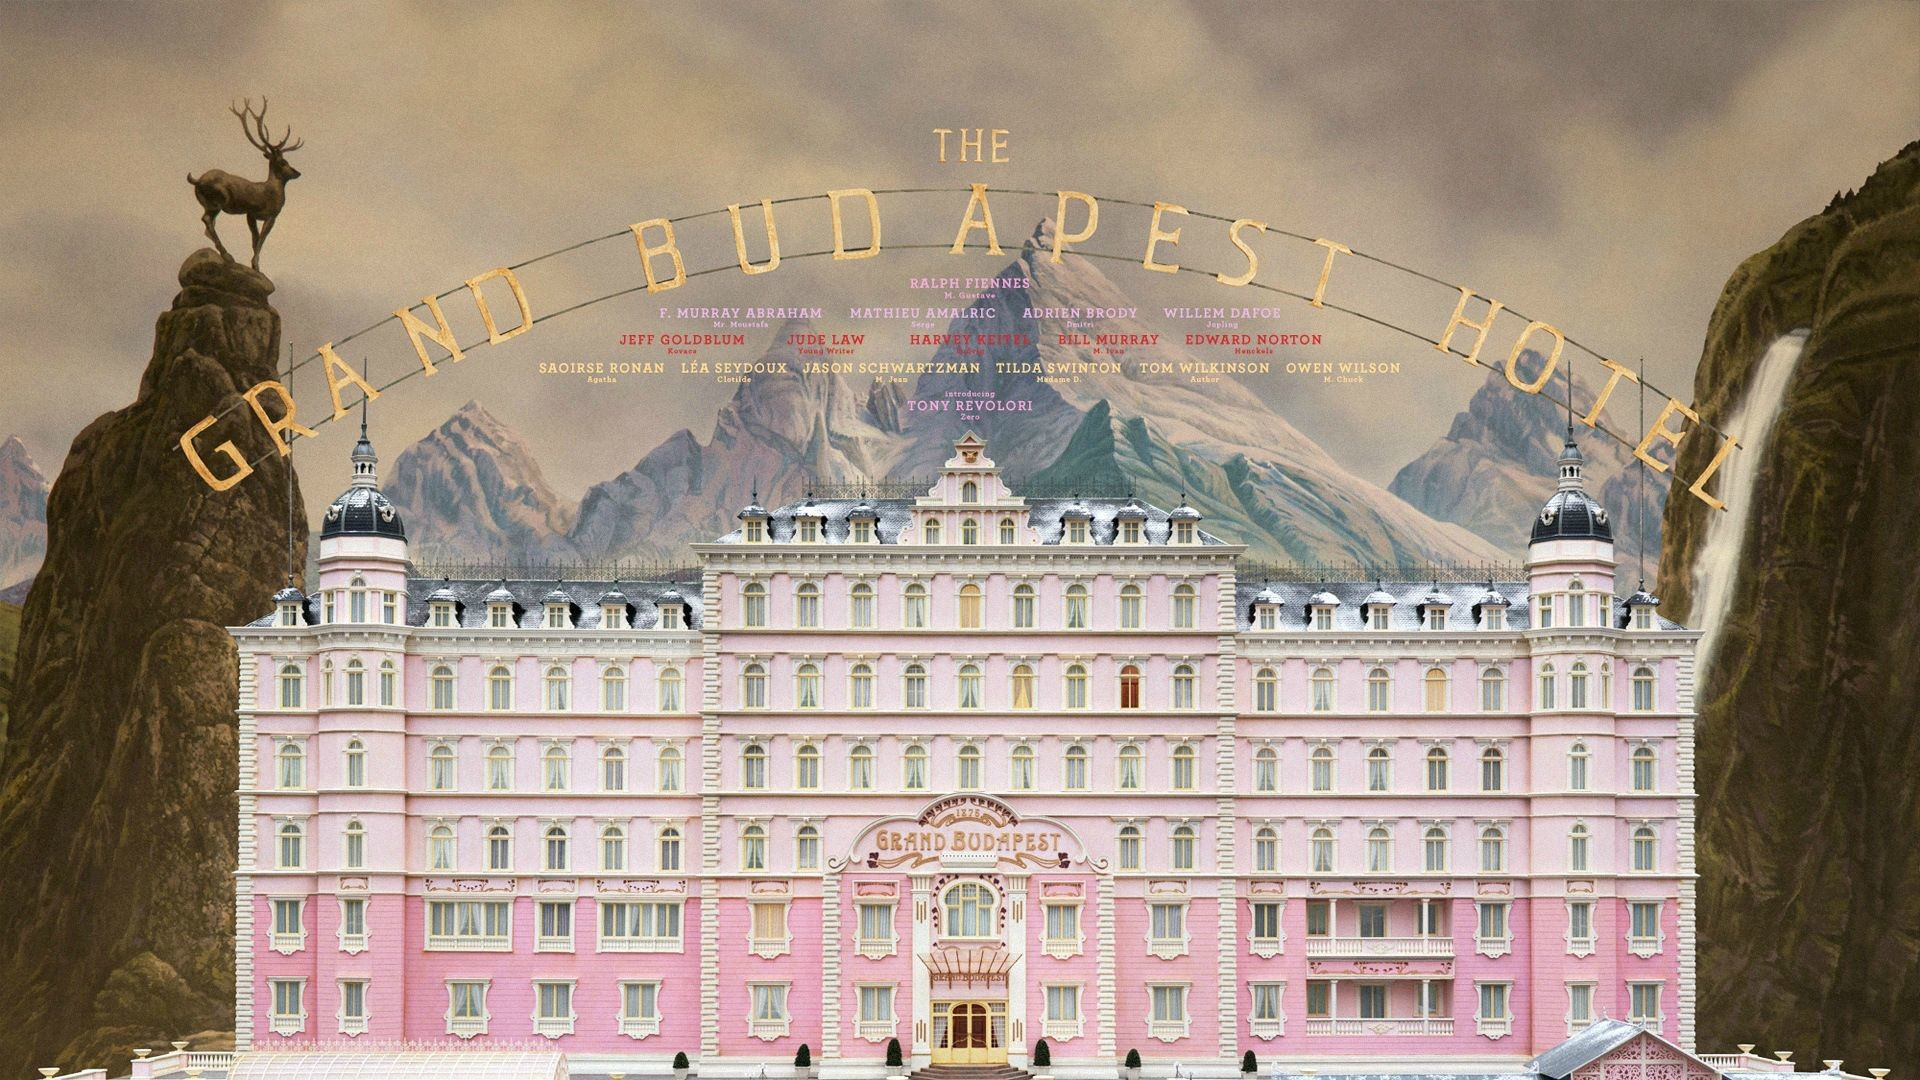 Wes Anderson. All great films.